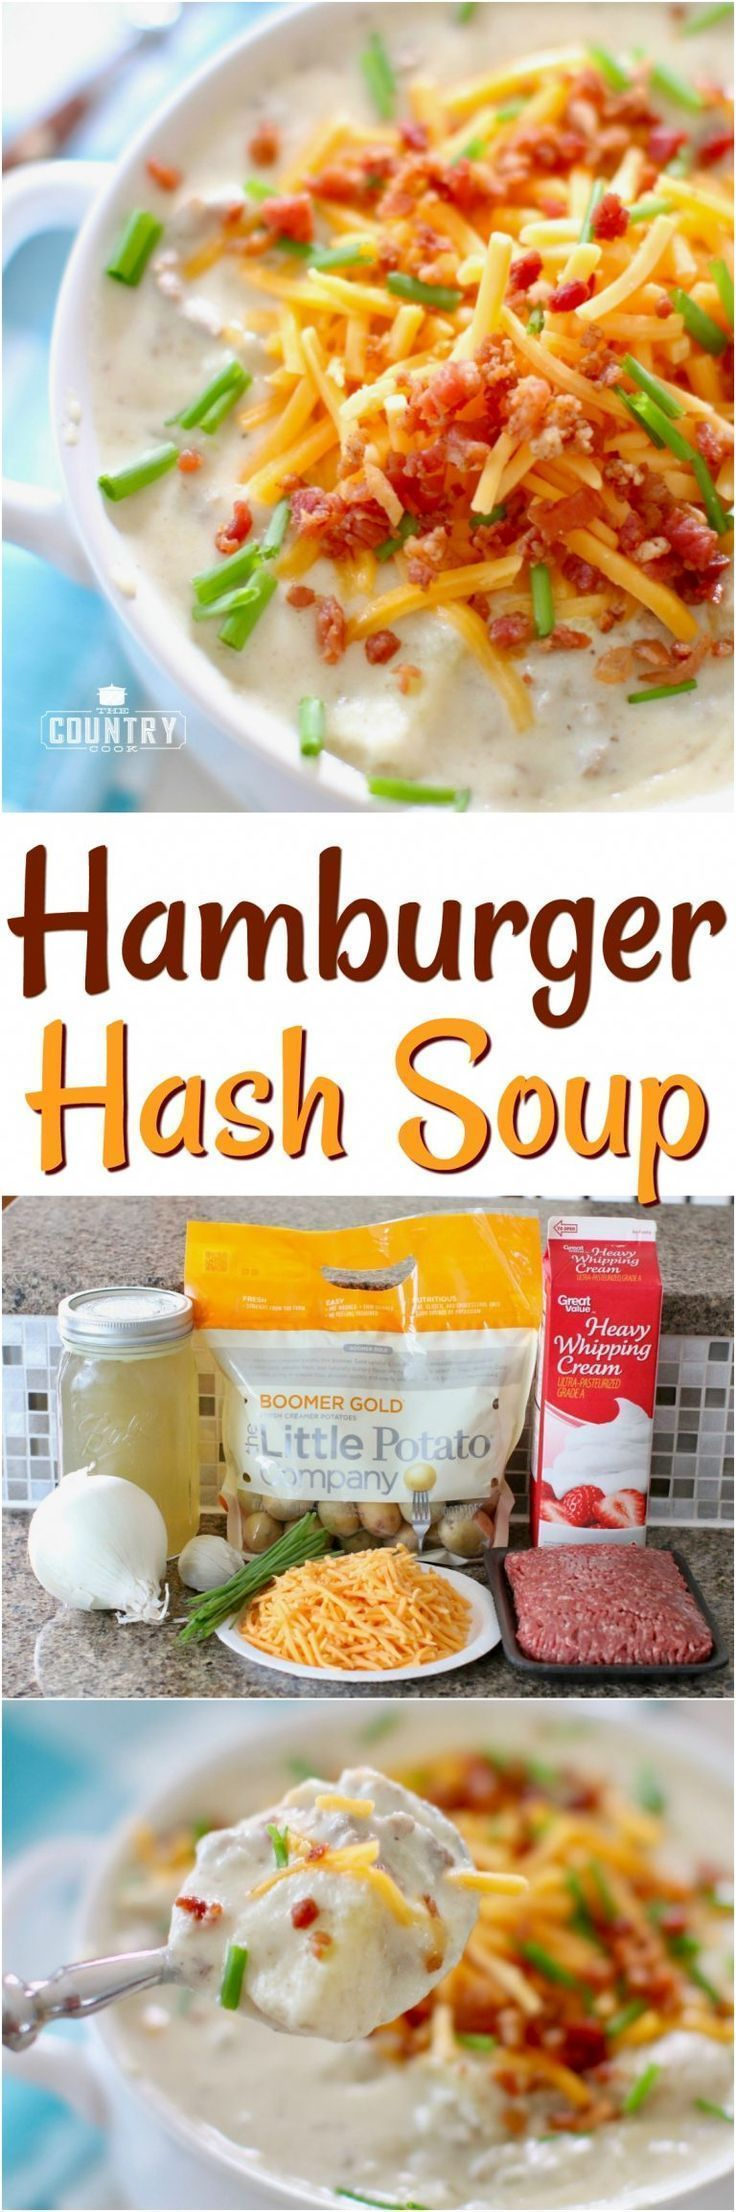 Creamy Hamburger Hash Soup recipe from The Country Cook #soup #groundbeef #potatoes